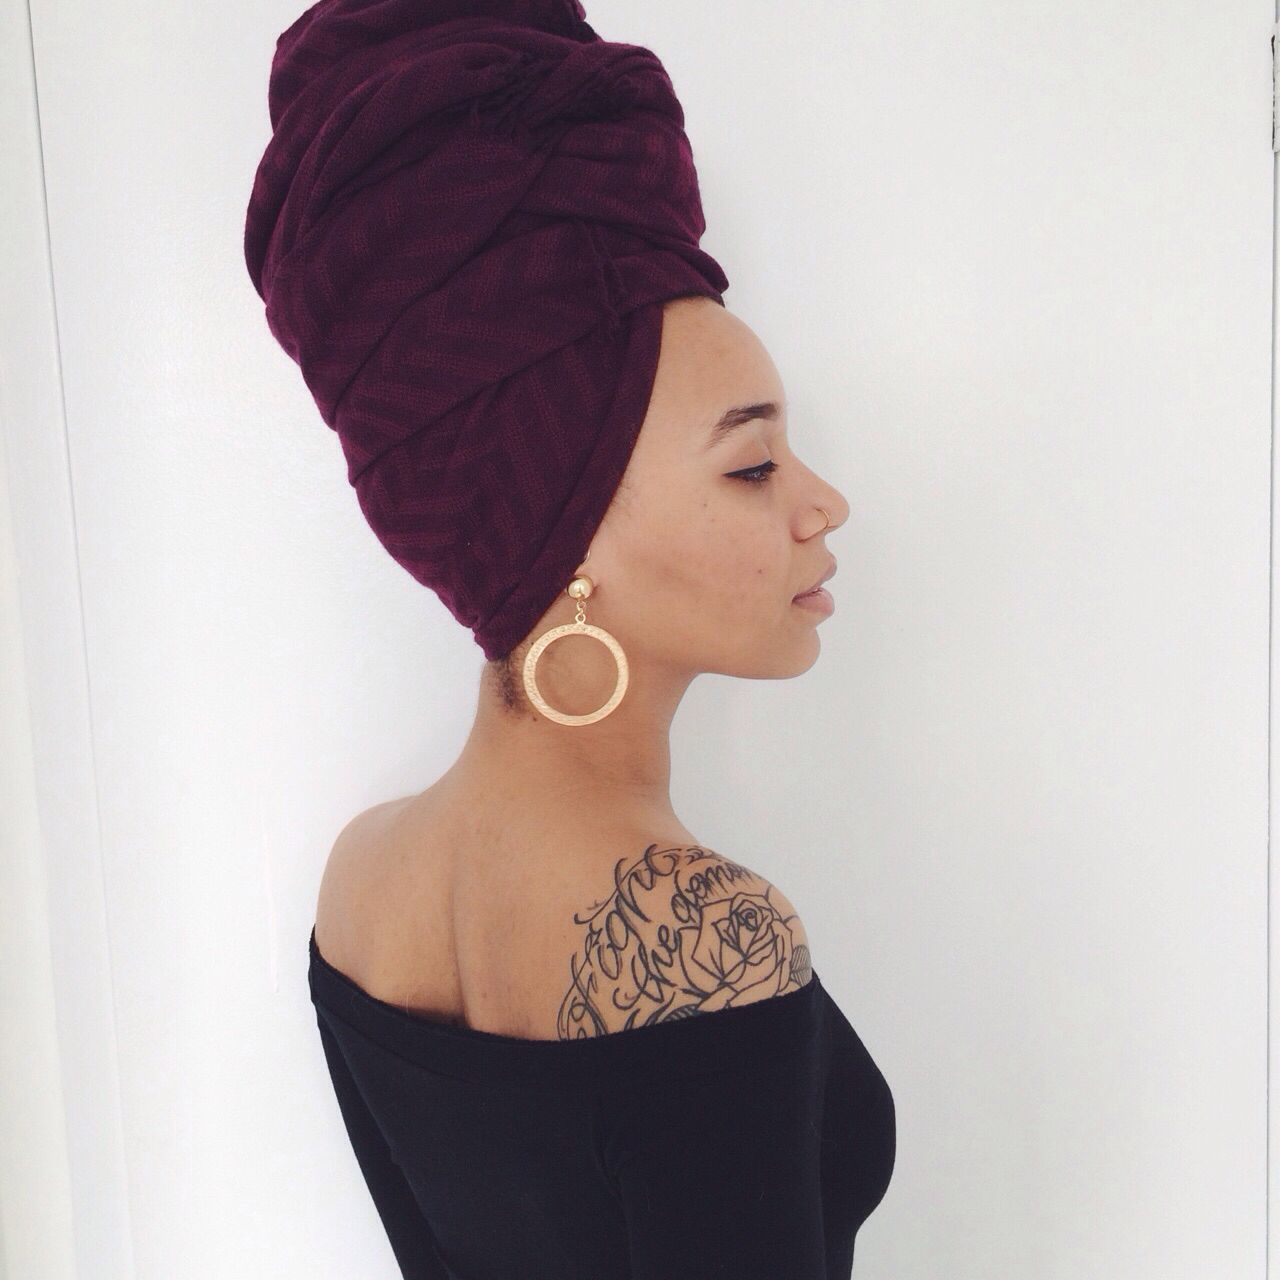 head scarves tumblr - photo #7